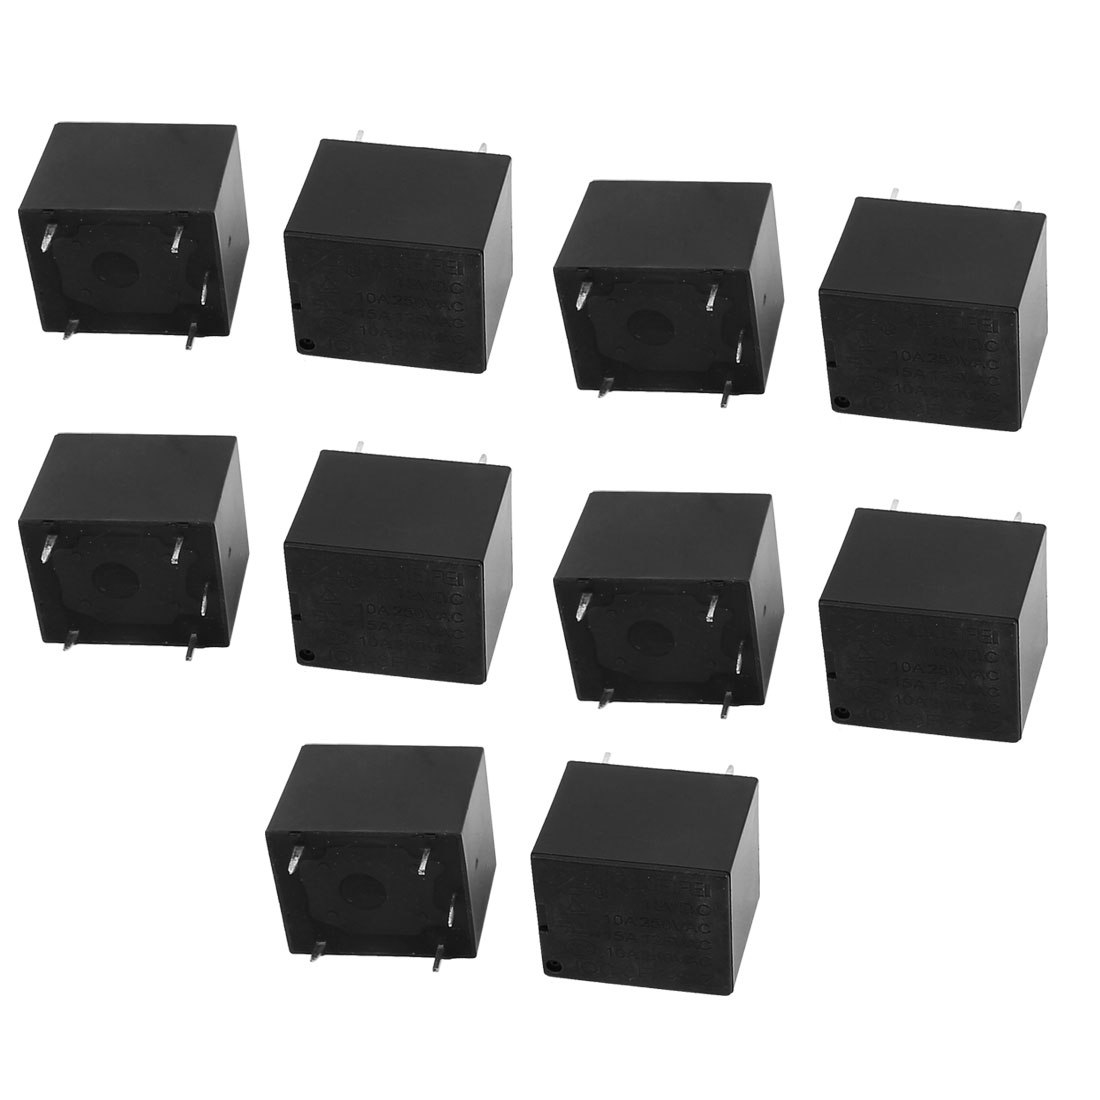 5Pcs JQC-3FF-S-Z DC12V 10A 0.36W 5 Terminal SPDT NO Mini Changeover Power Coil Relay